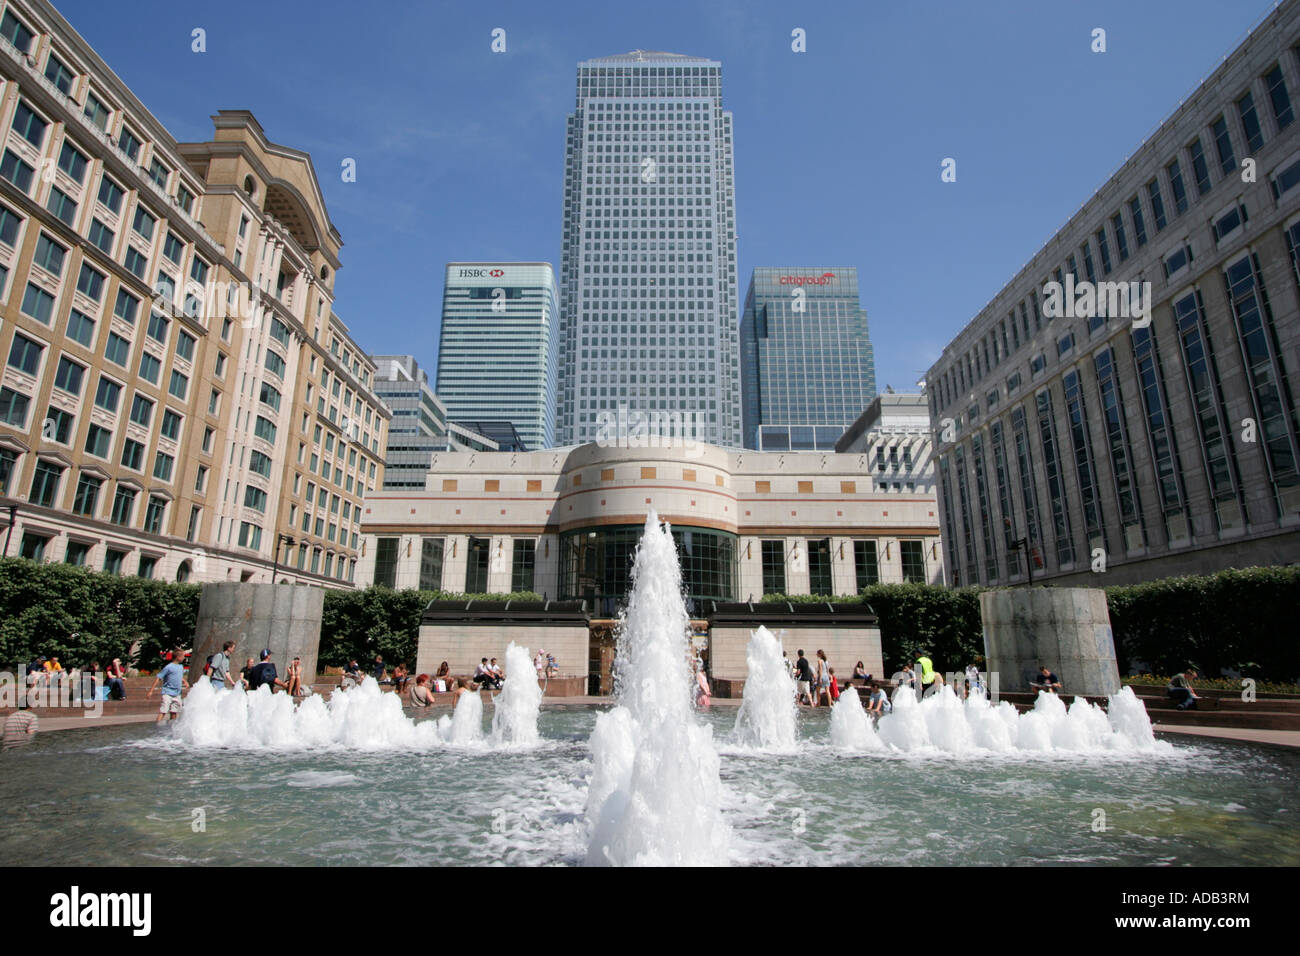 Water fountains canada - 1 Canada Square Cabot Square Water Fountain London Docklands Canary Wharf England Uk Gb